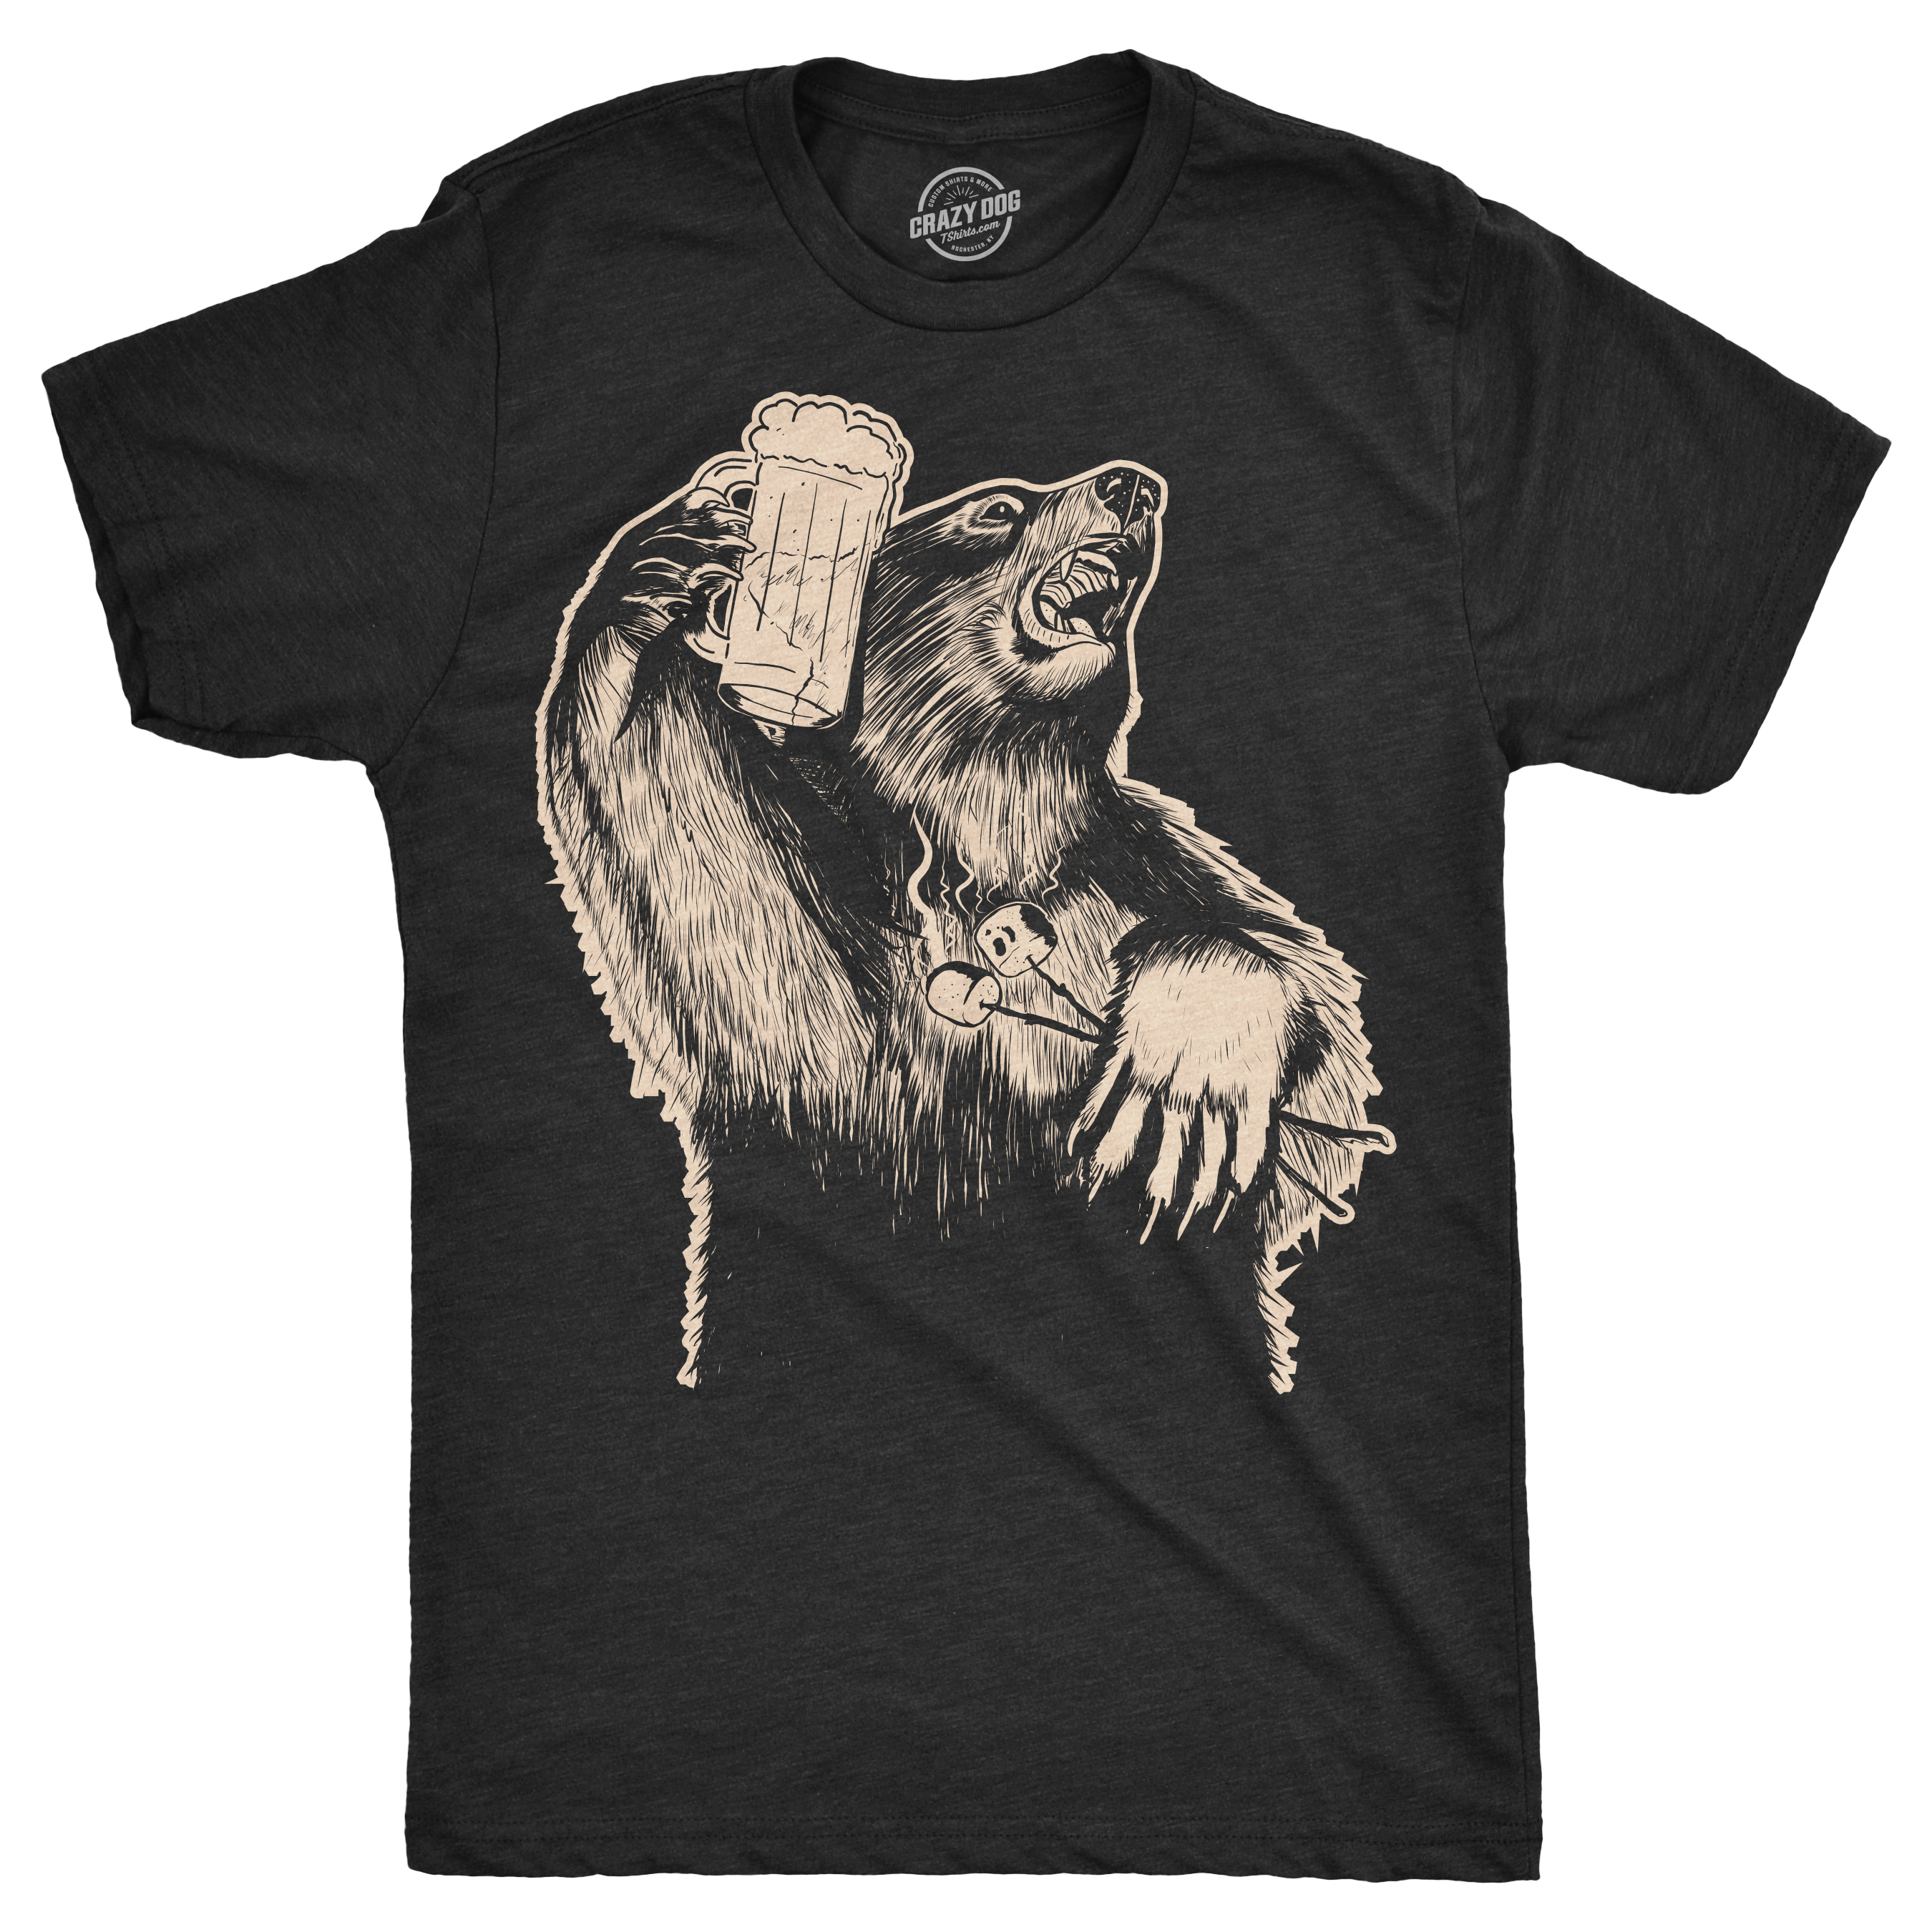 0c9b2ed5f Mens Party Bear Tshirt Funny Drinking Grizzly Tee For Guys (Heather Black)  -S